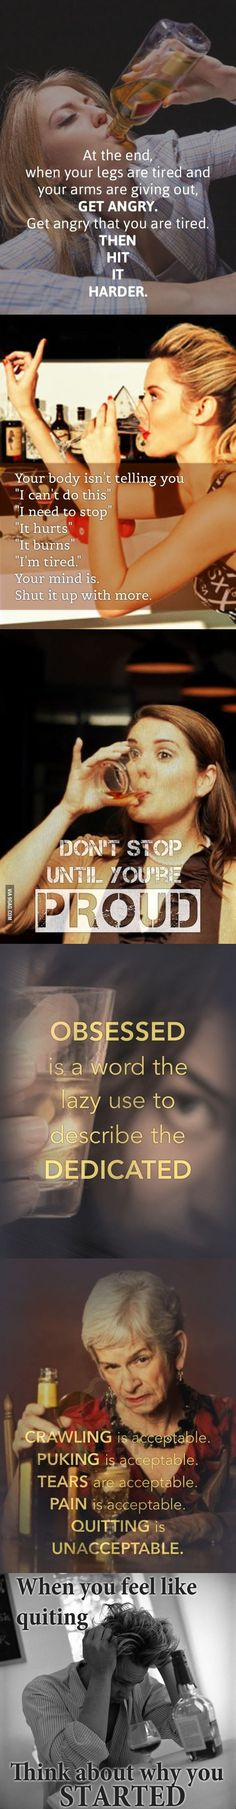 Adding inspirational athletic quotes to pictures of drunk people changes everything about them.